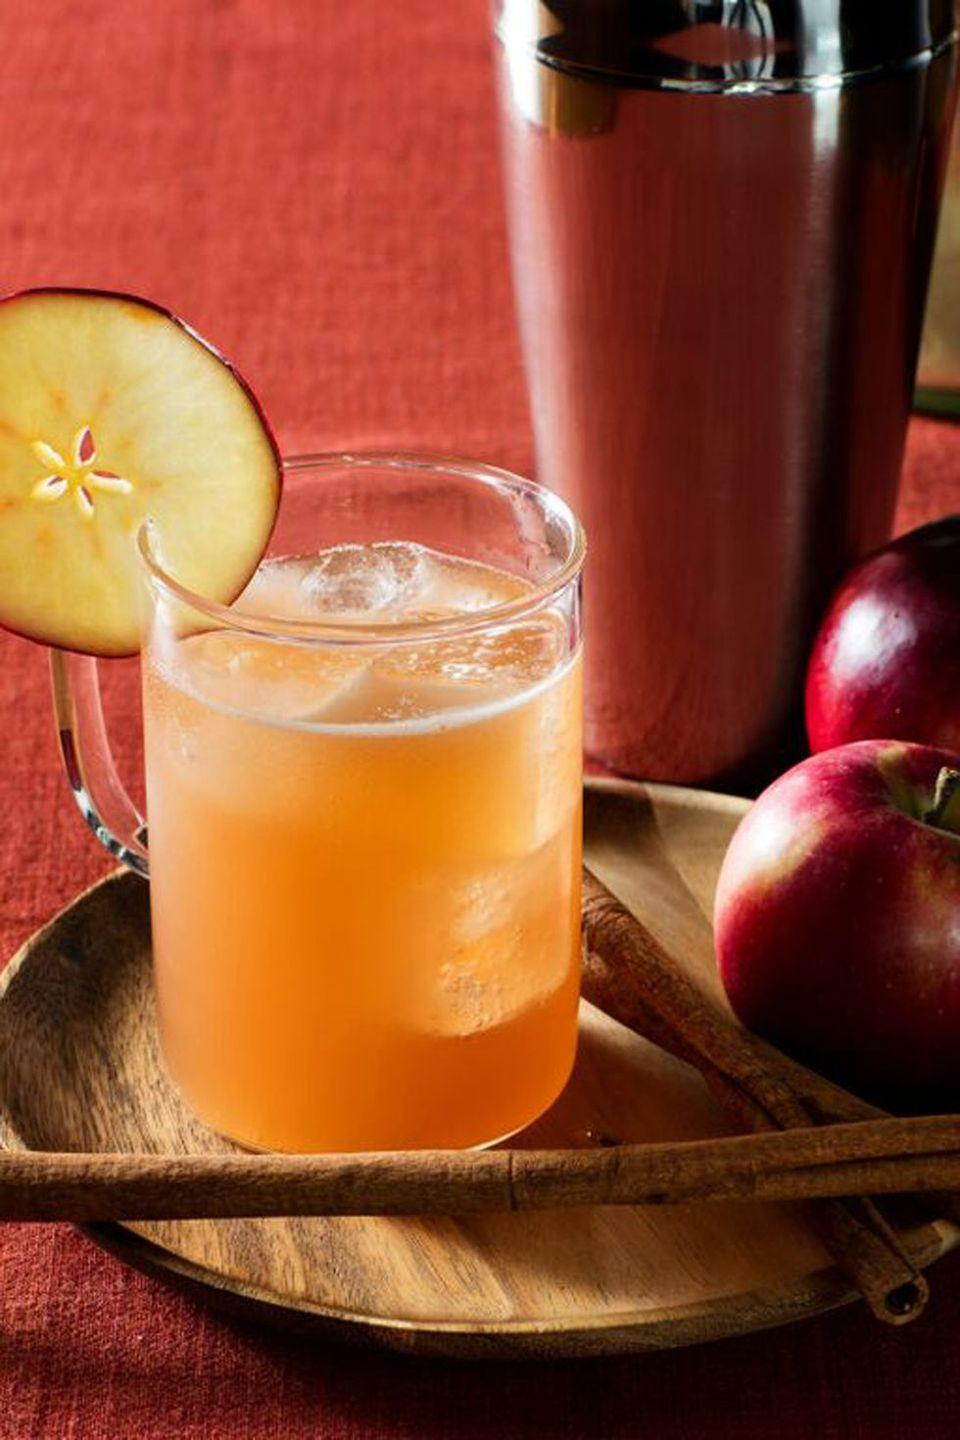 <p><strong>Ingredients</strong></p><p>1.5 oz Absolut vodka<br>.5 oz caramel syrup<br>1 oz apple cider</p><p><strong>Instructions</strong></p><p>Shake all ingredients with ice. Strain into a wooden mug over ice, top with ginger beer. Garnish with apple fan.</p>